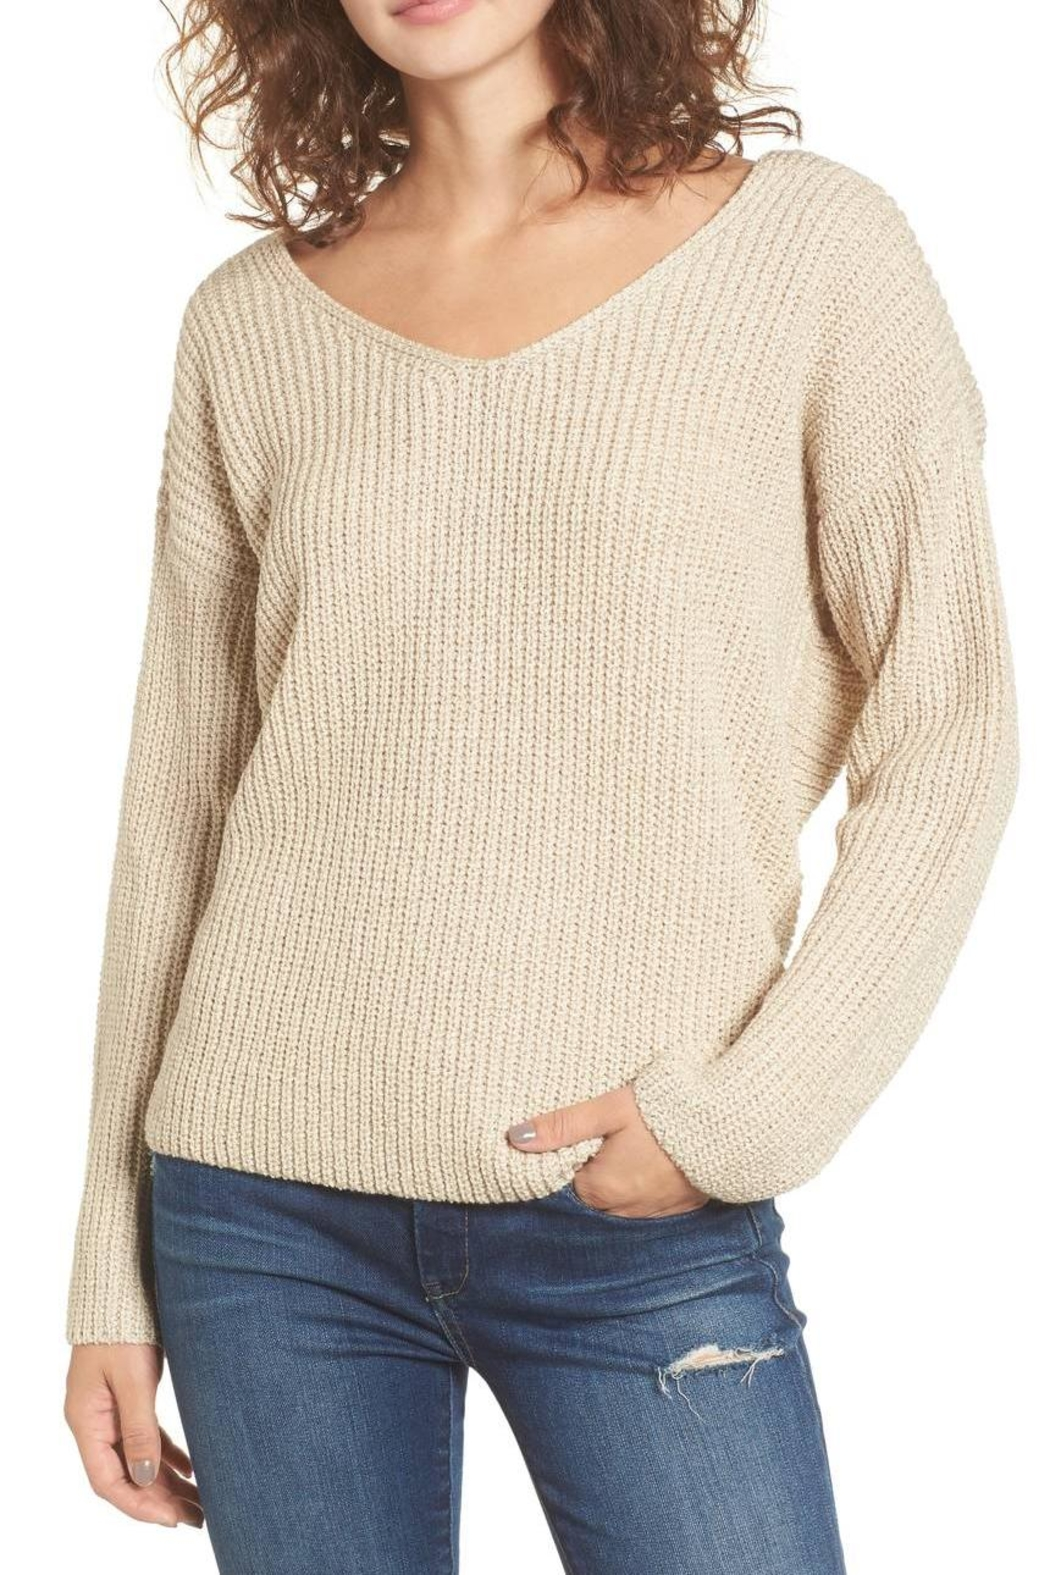 ASTR Twist Back Sweater - Main Image